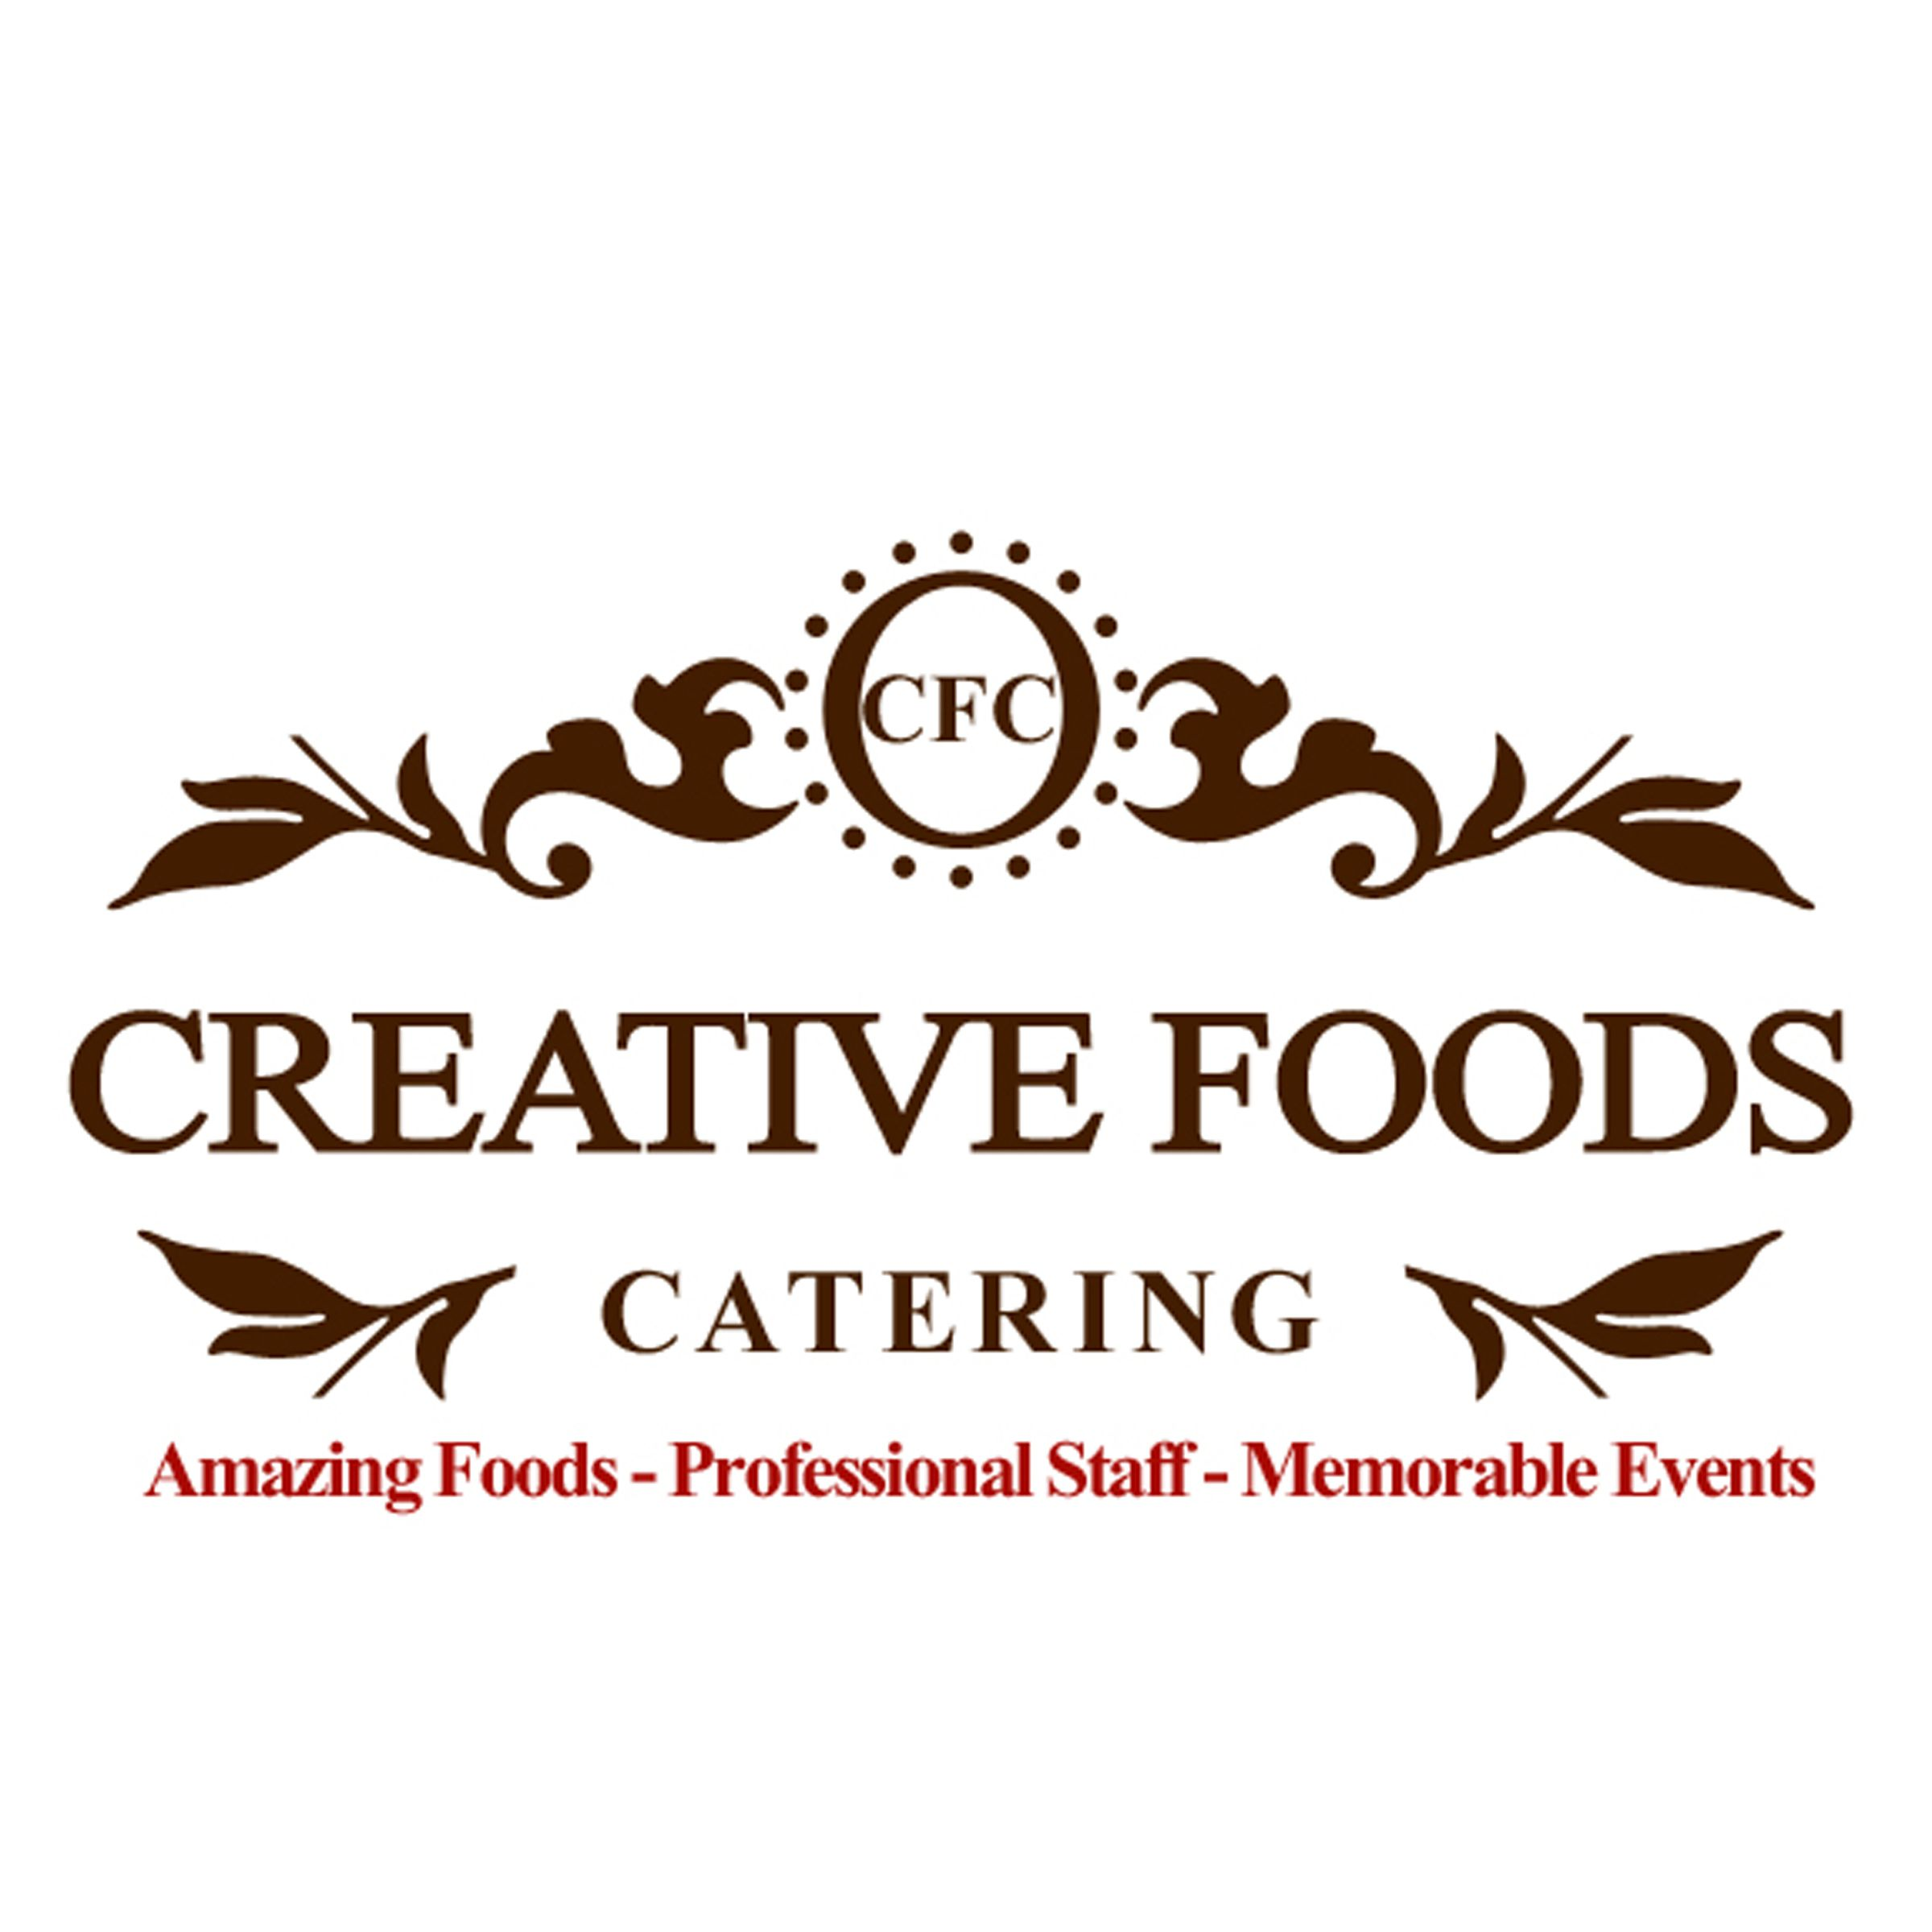 Catering Logo Creative food, Catering logo, Catering